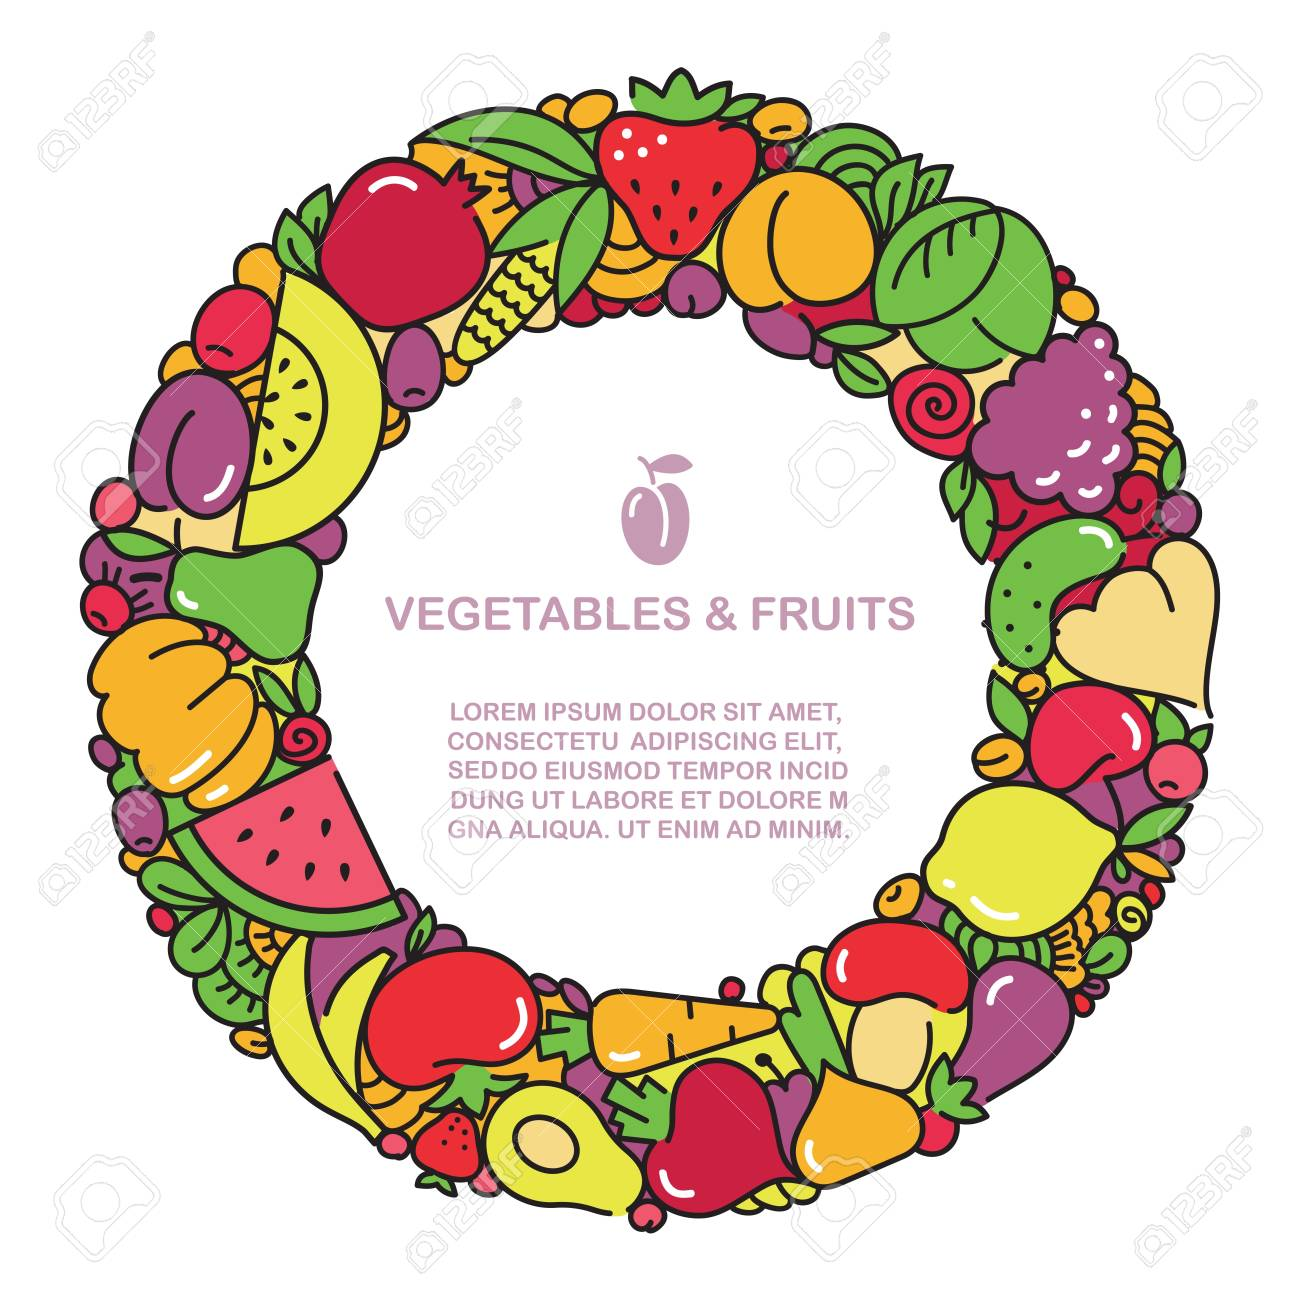 Fun Image Of Vegetables And Fruit In The Form Of Frames With ...